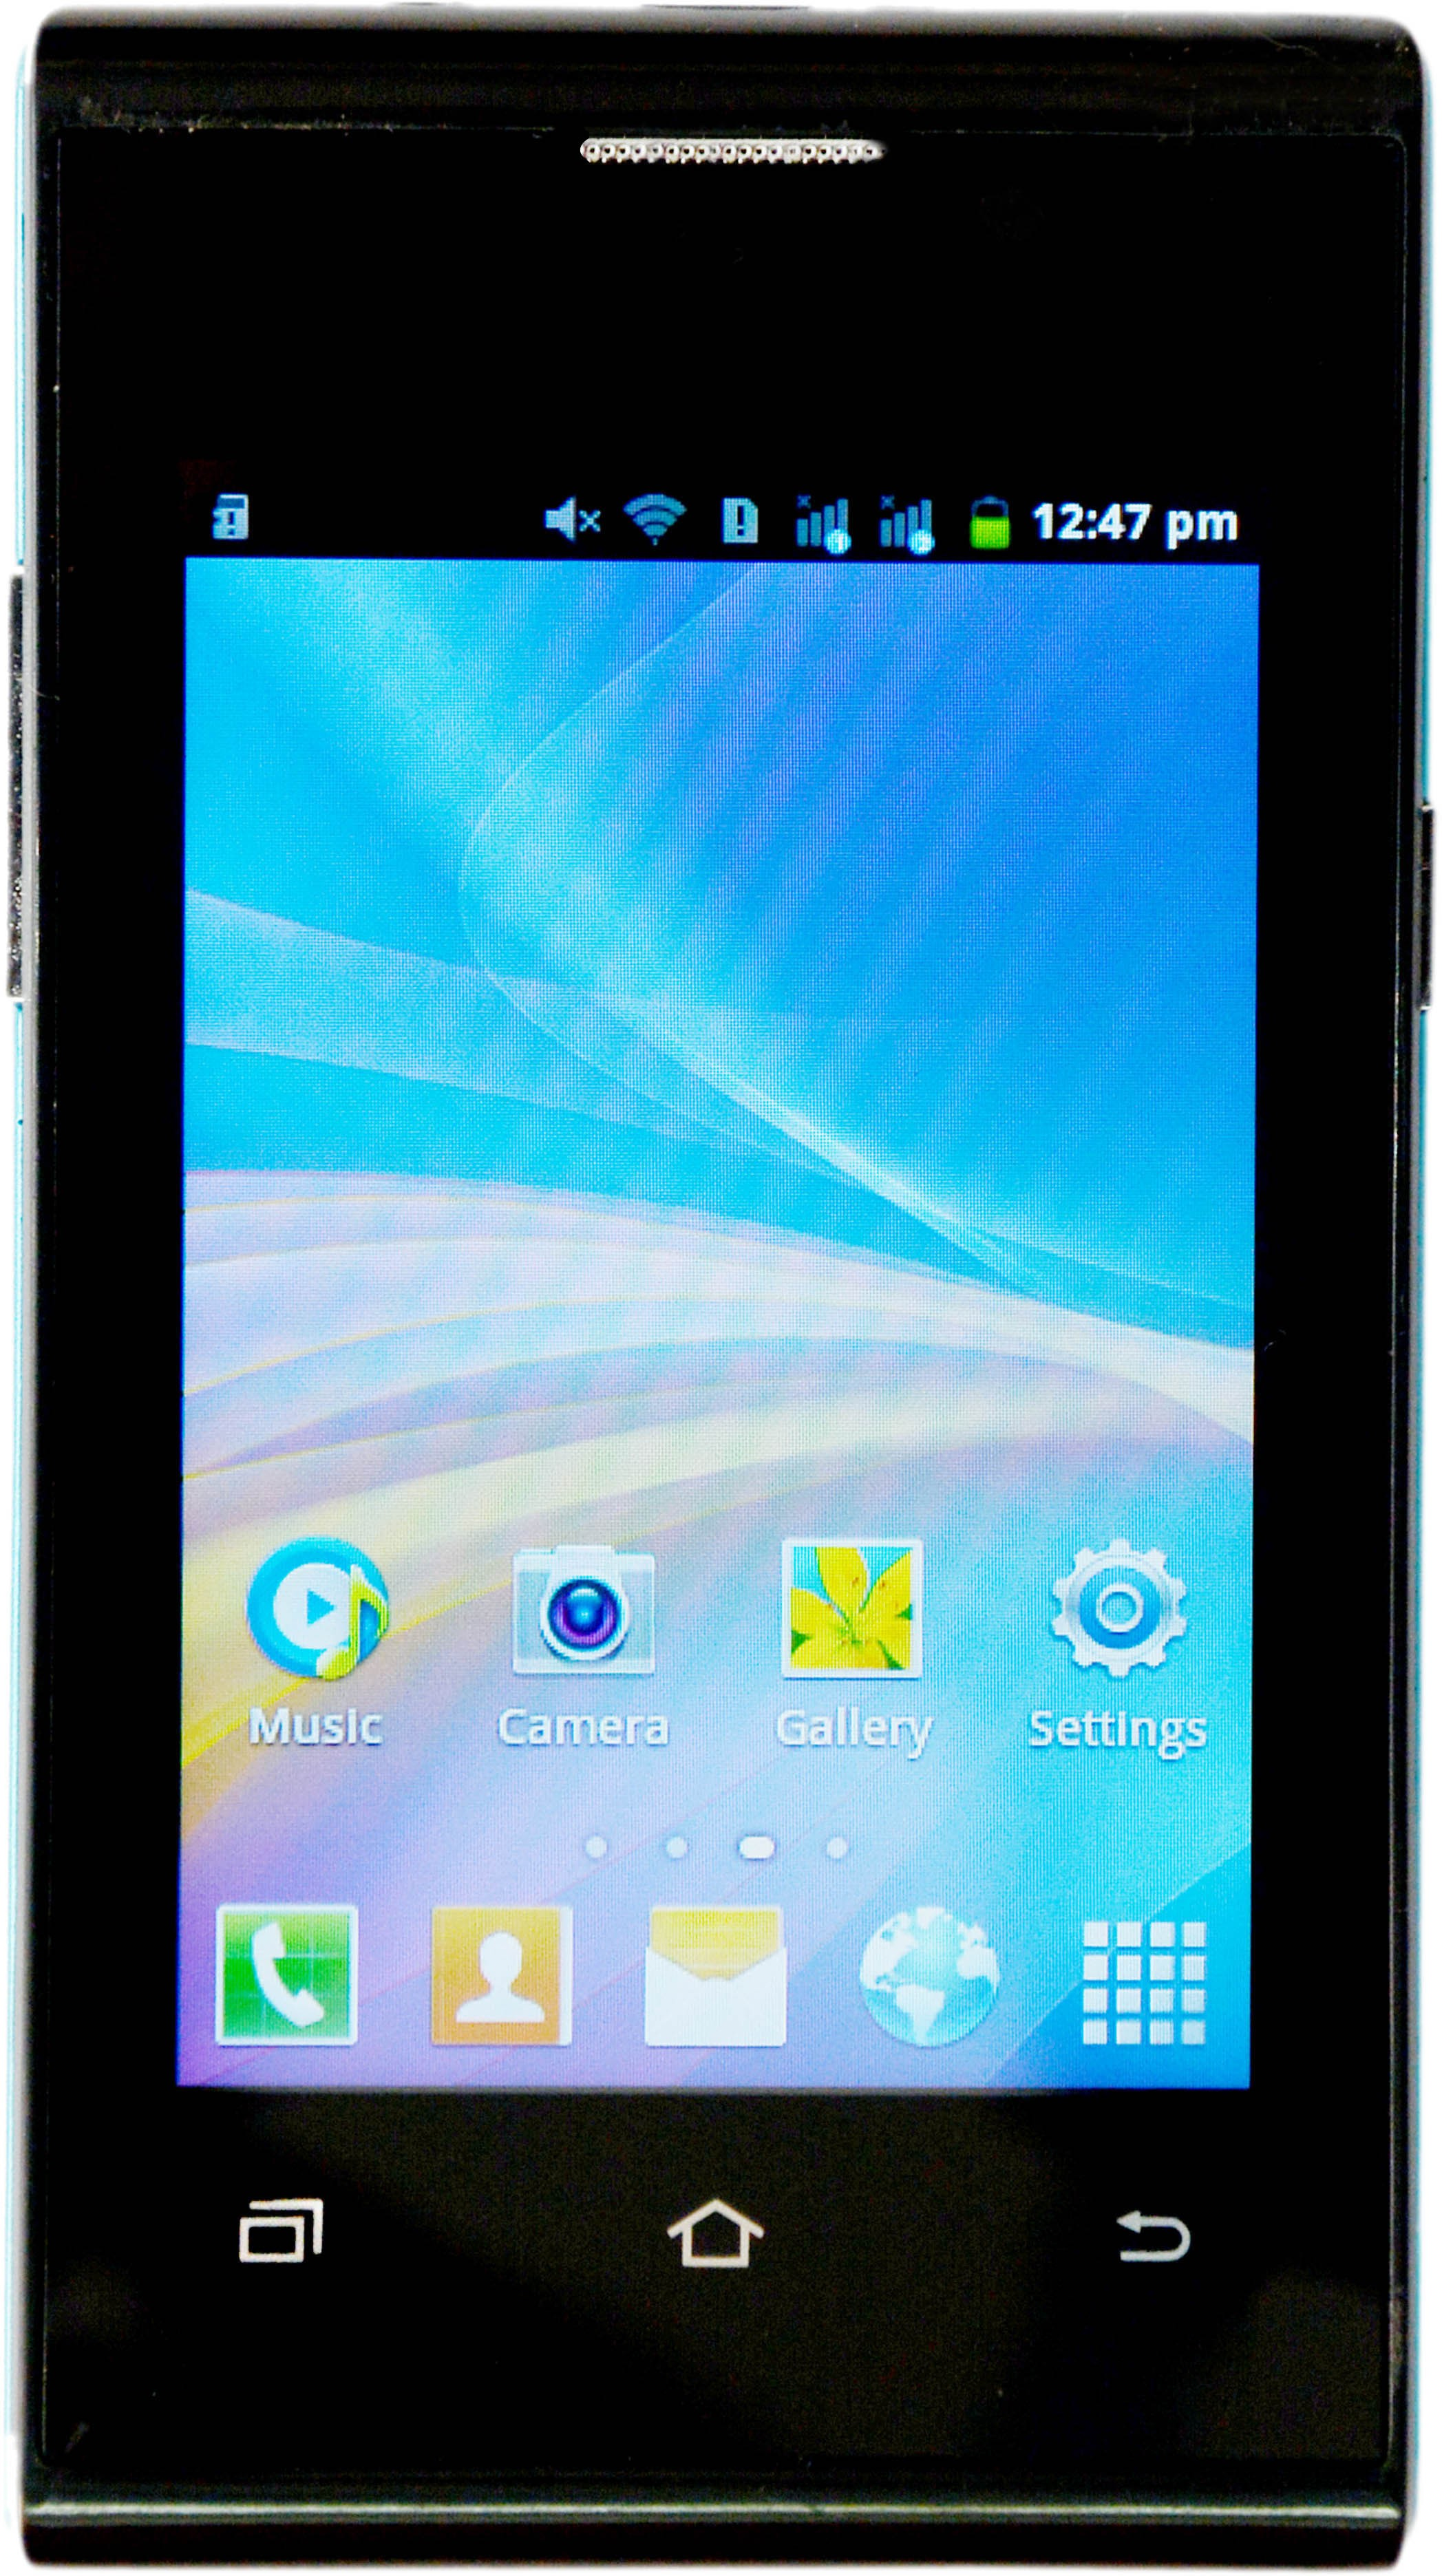 Ginger Monix Android G310 Red Bull By Camerii (Blue, 512 MB)(1 GB RAM)